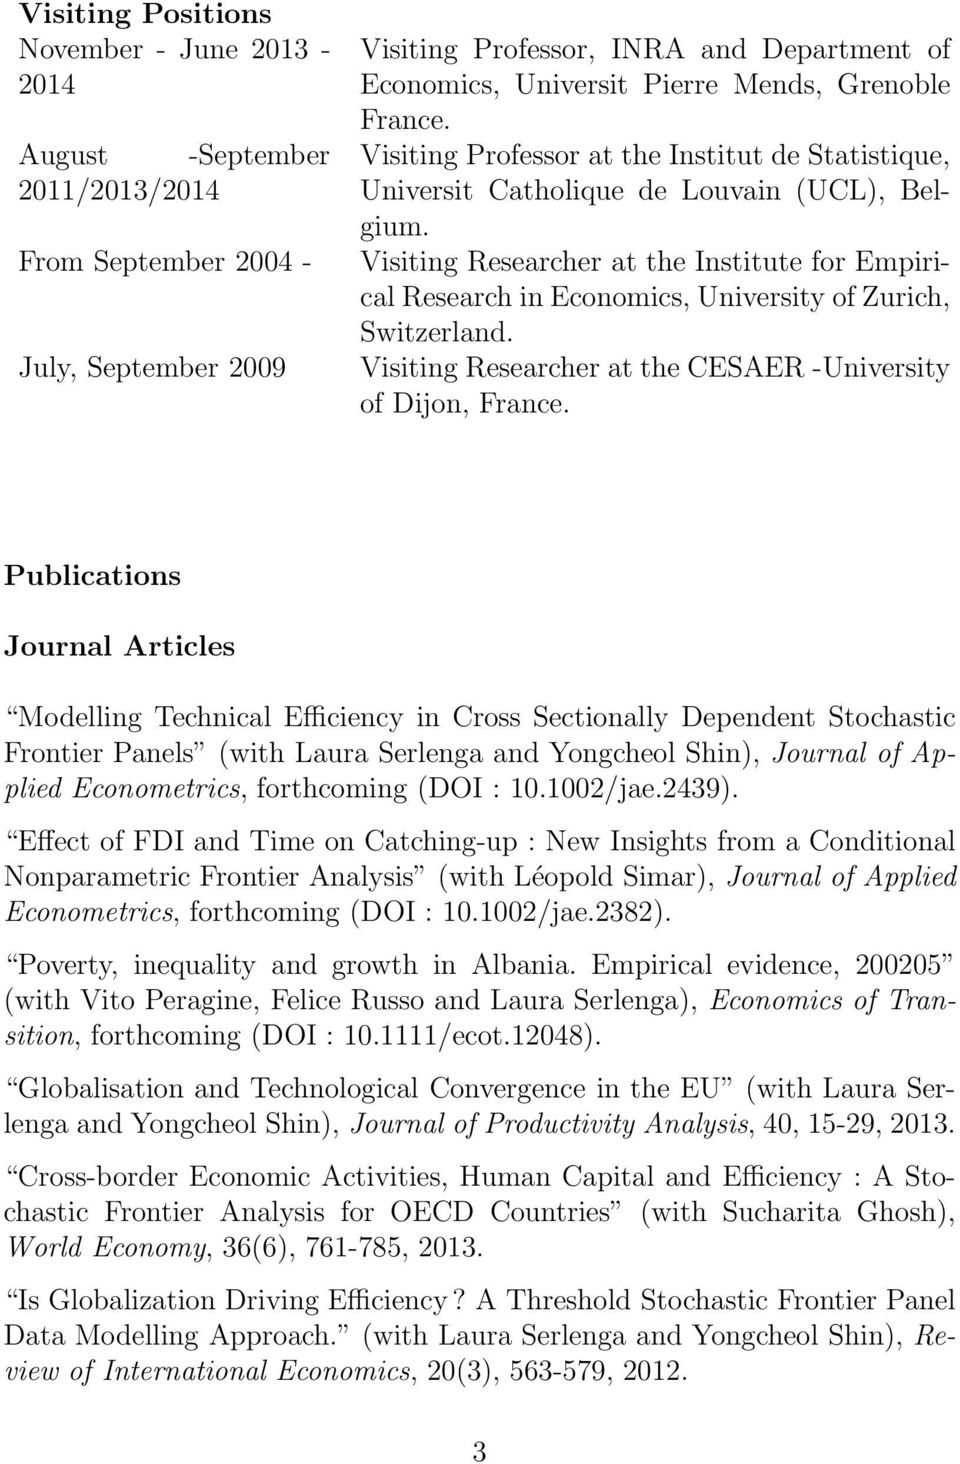 Visiting Researcher at the Institute for Empirical Research in Economics, University of Zurich, Switzerland. Visiting Researcher at the CESAER -University of Dijon, France.